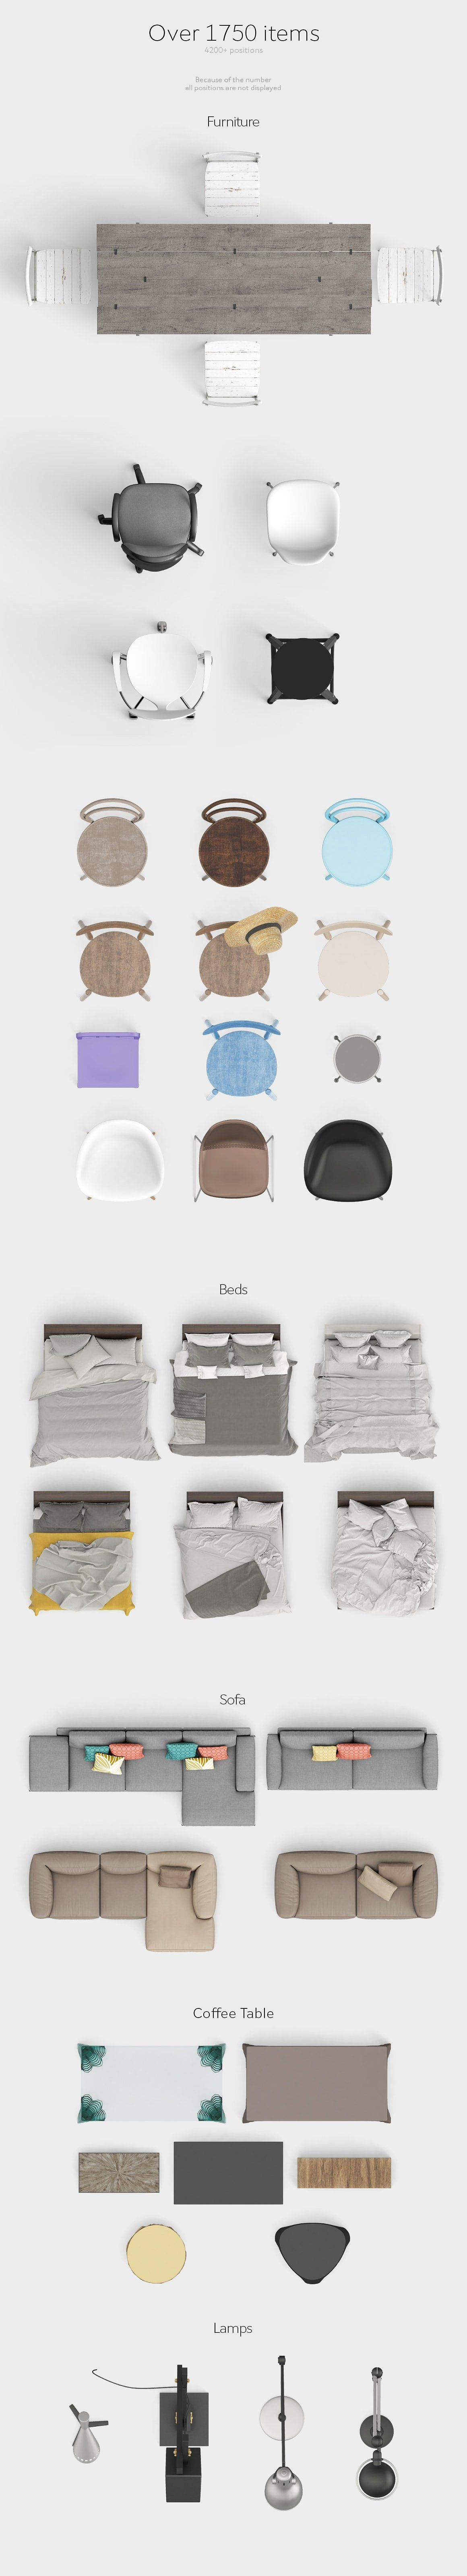 scene creator top view by qeaql on creativemarket